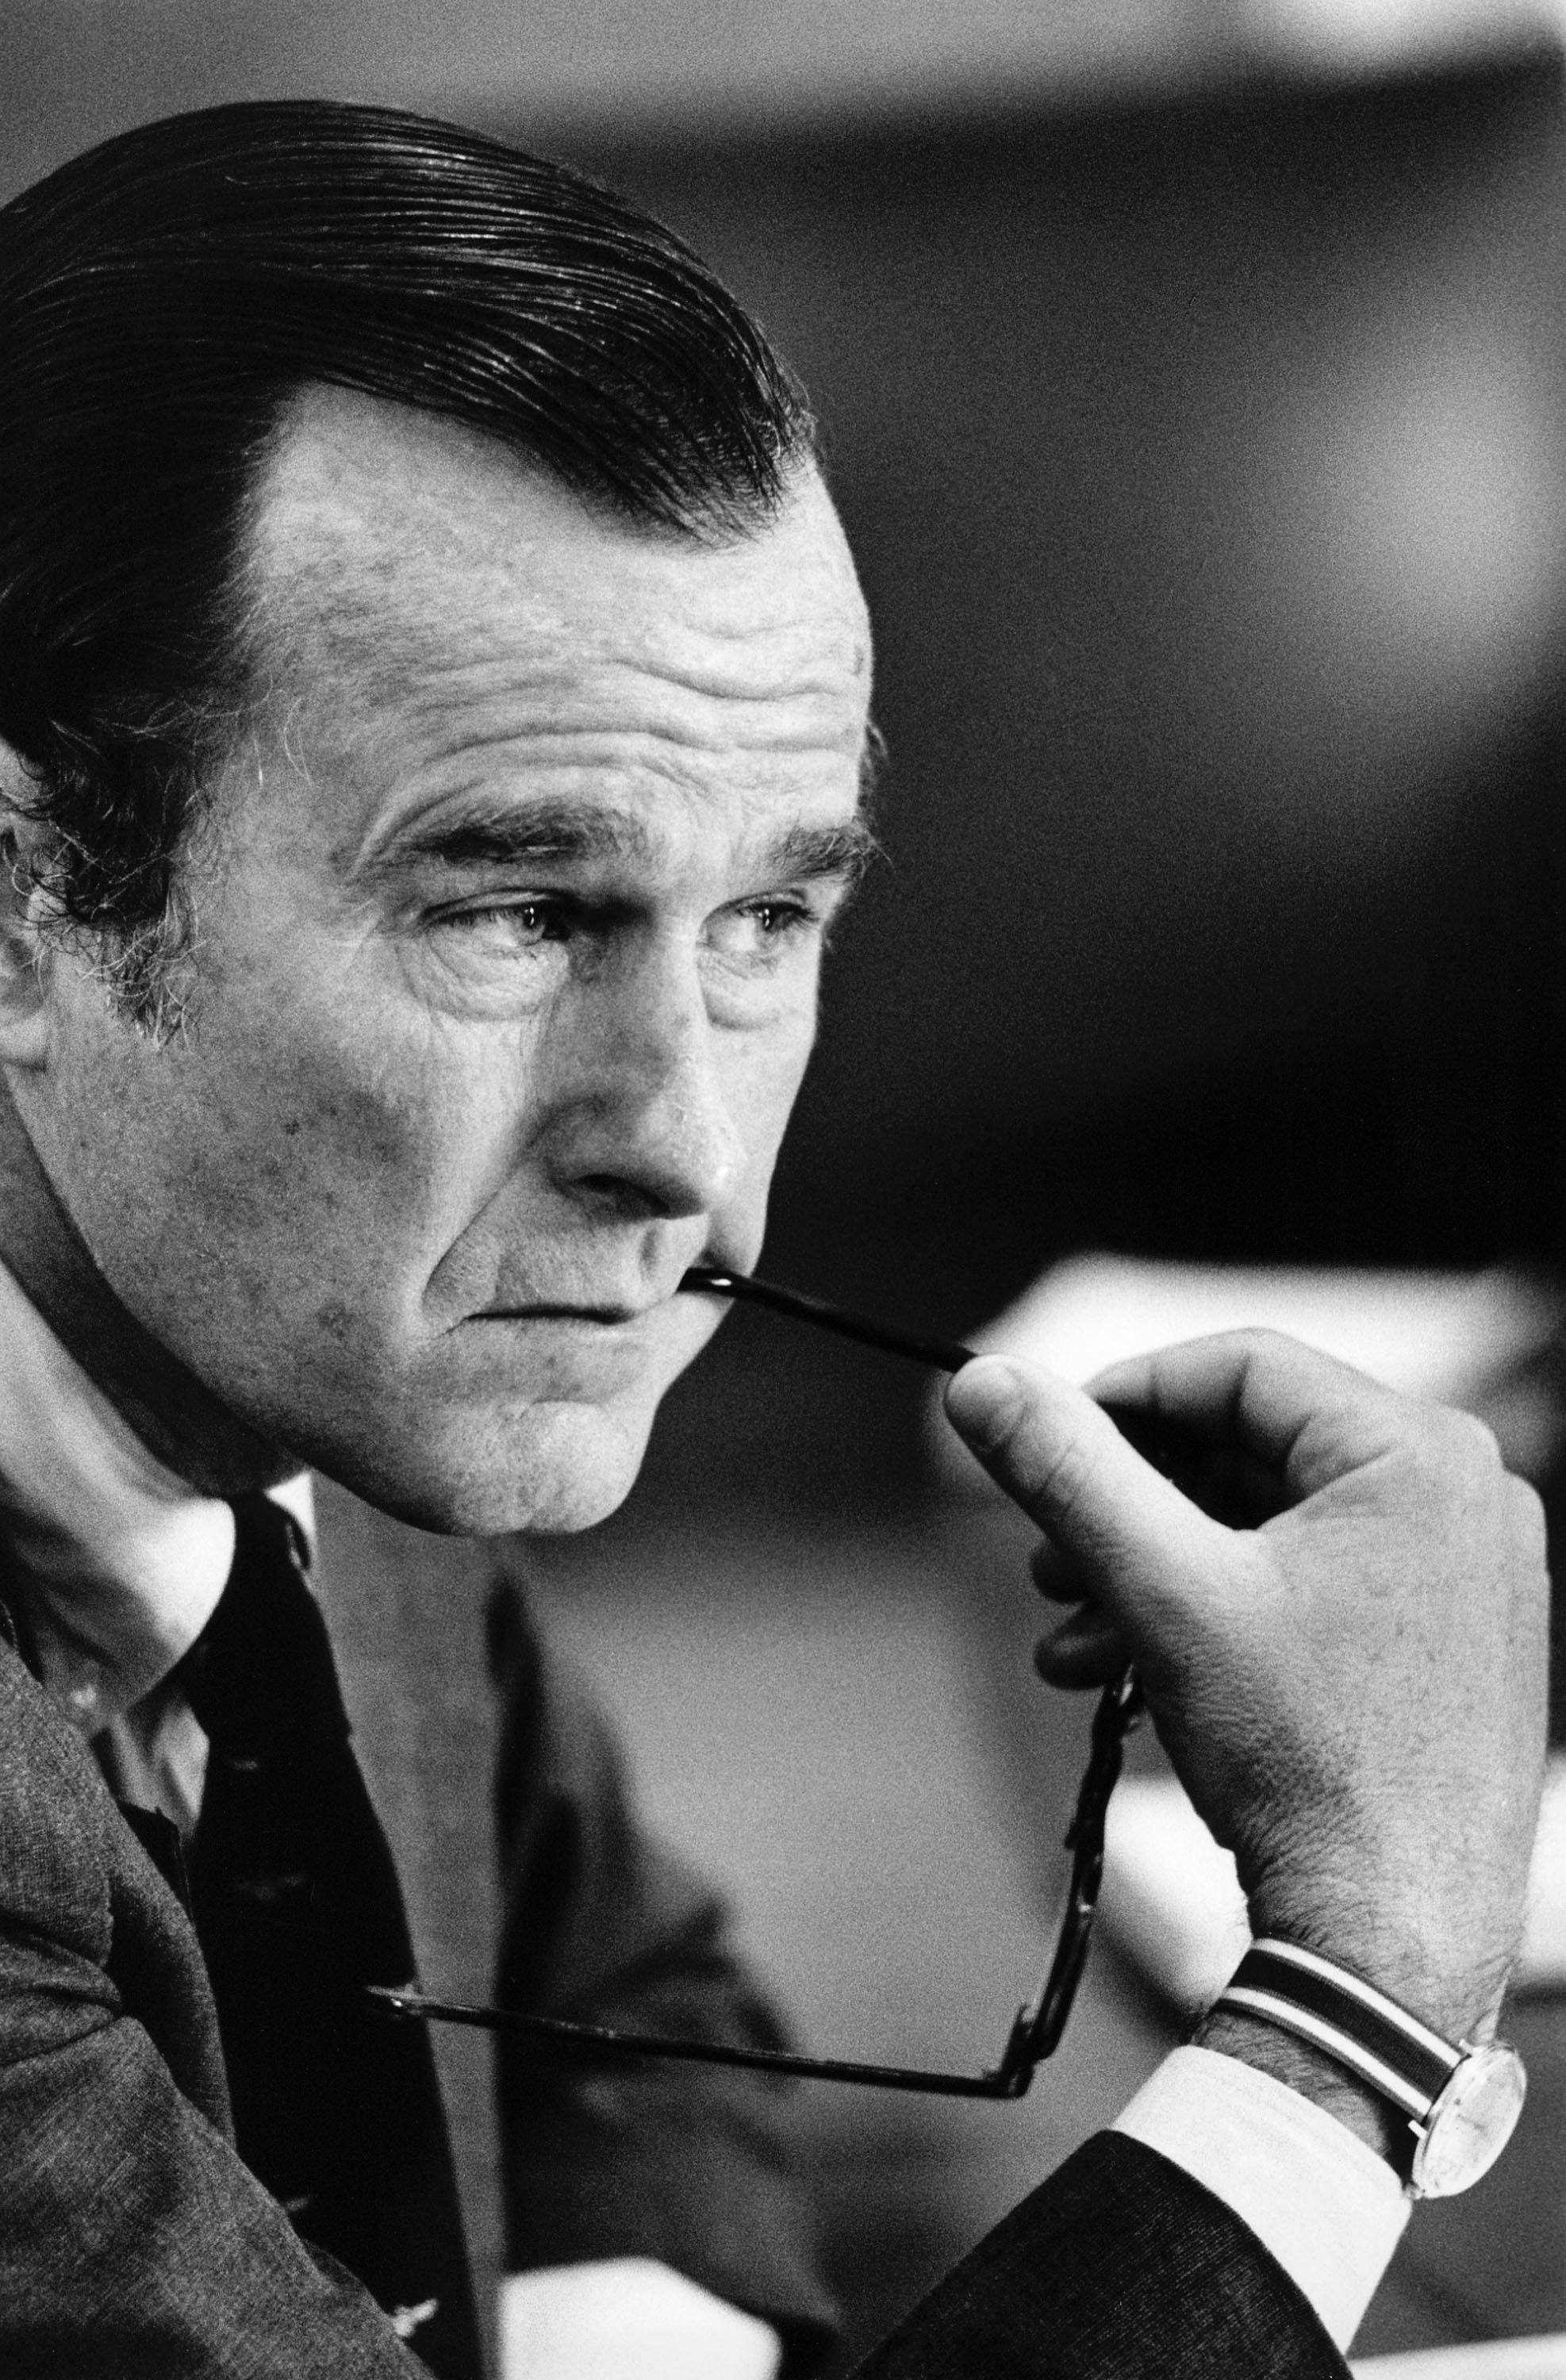 George H.W. Bush, director of the U.S. Central Intelligence Agency, attends a Cabinet meeting in Washington in 1976.